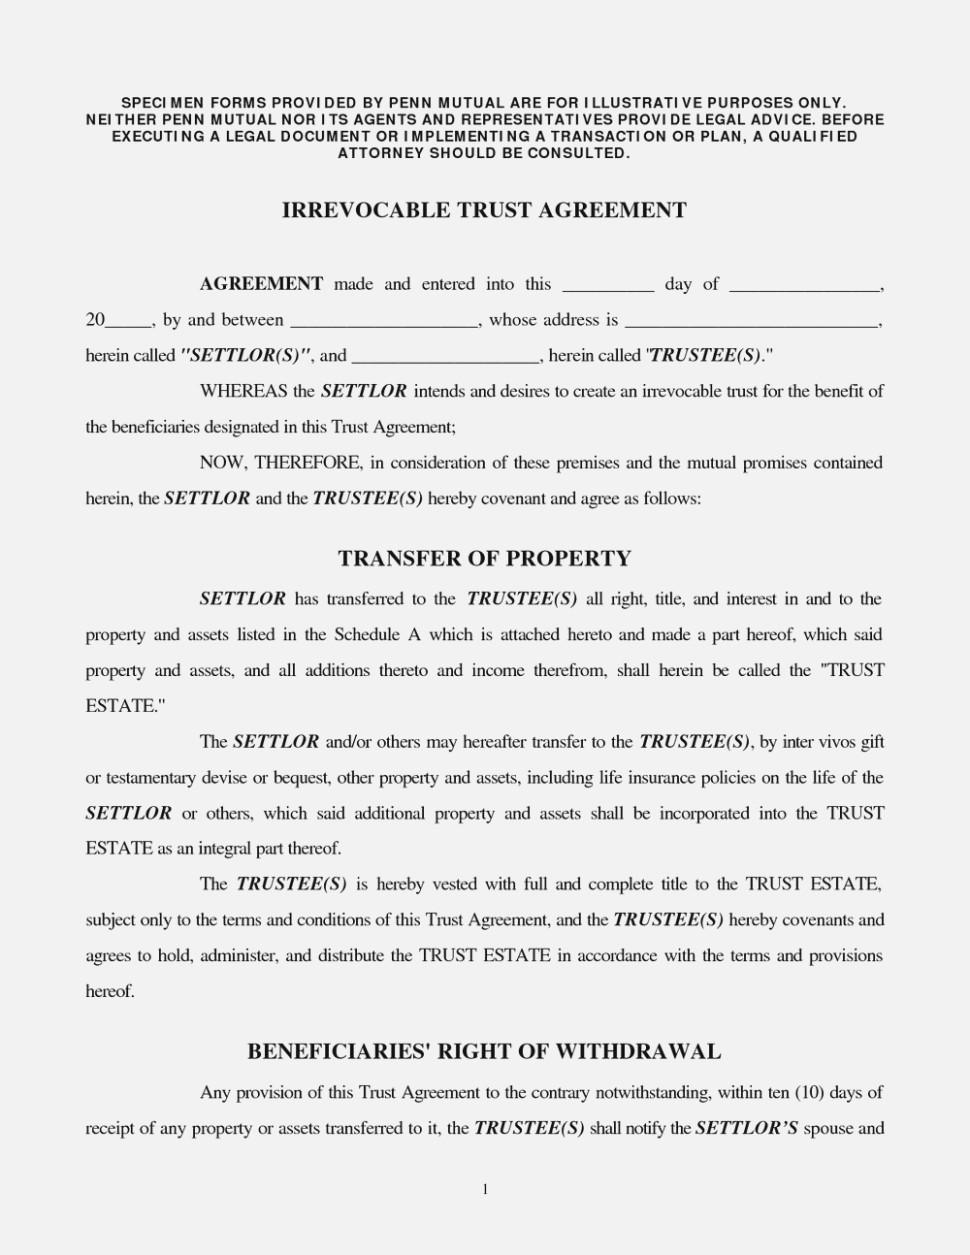 Irrevocable Medicaid Trust Form